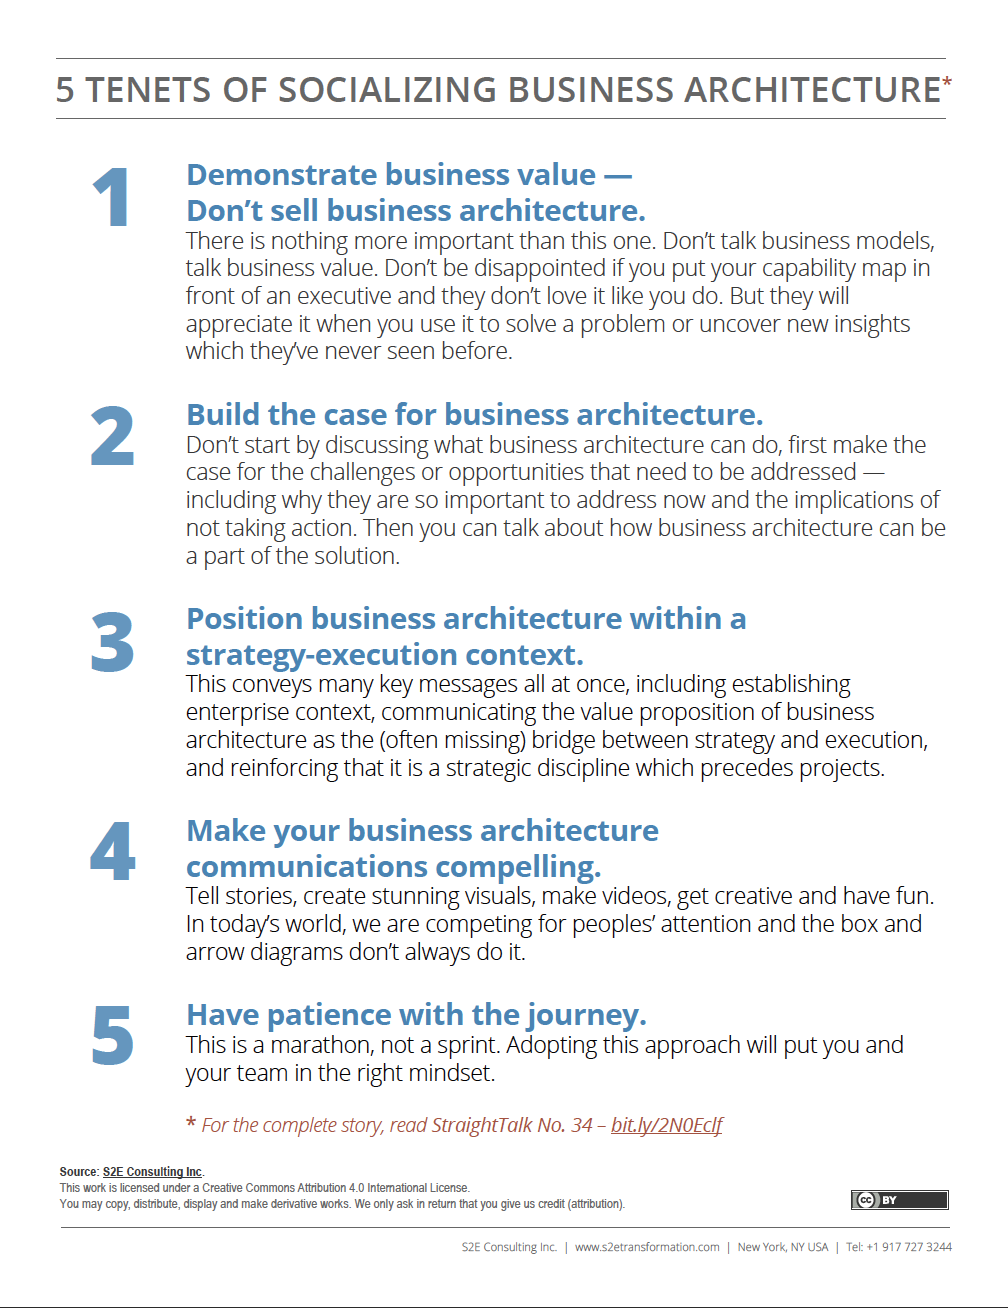 Five Tenets of Socializing Business Architecture